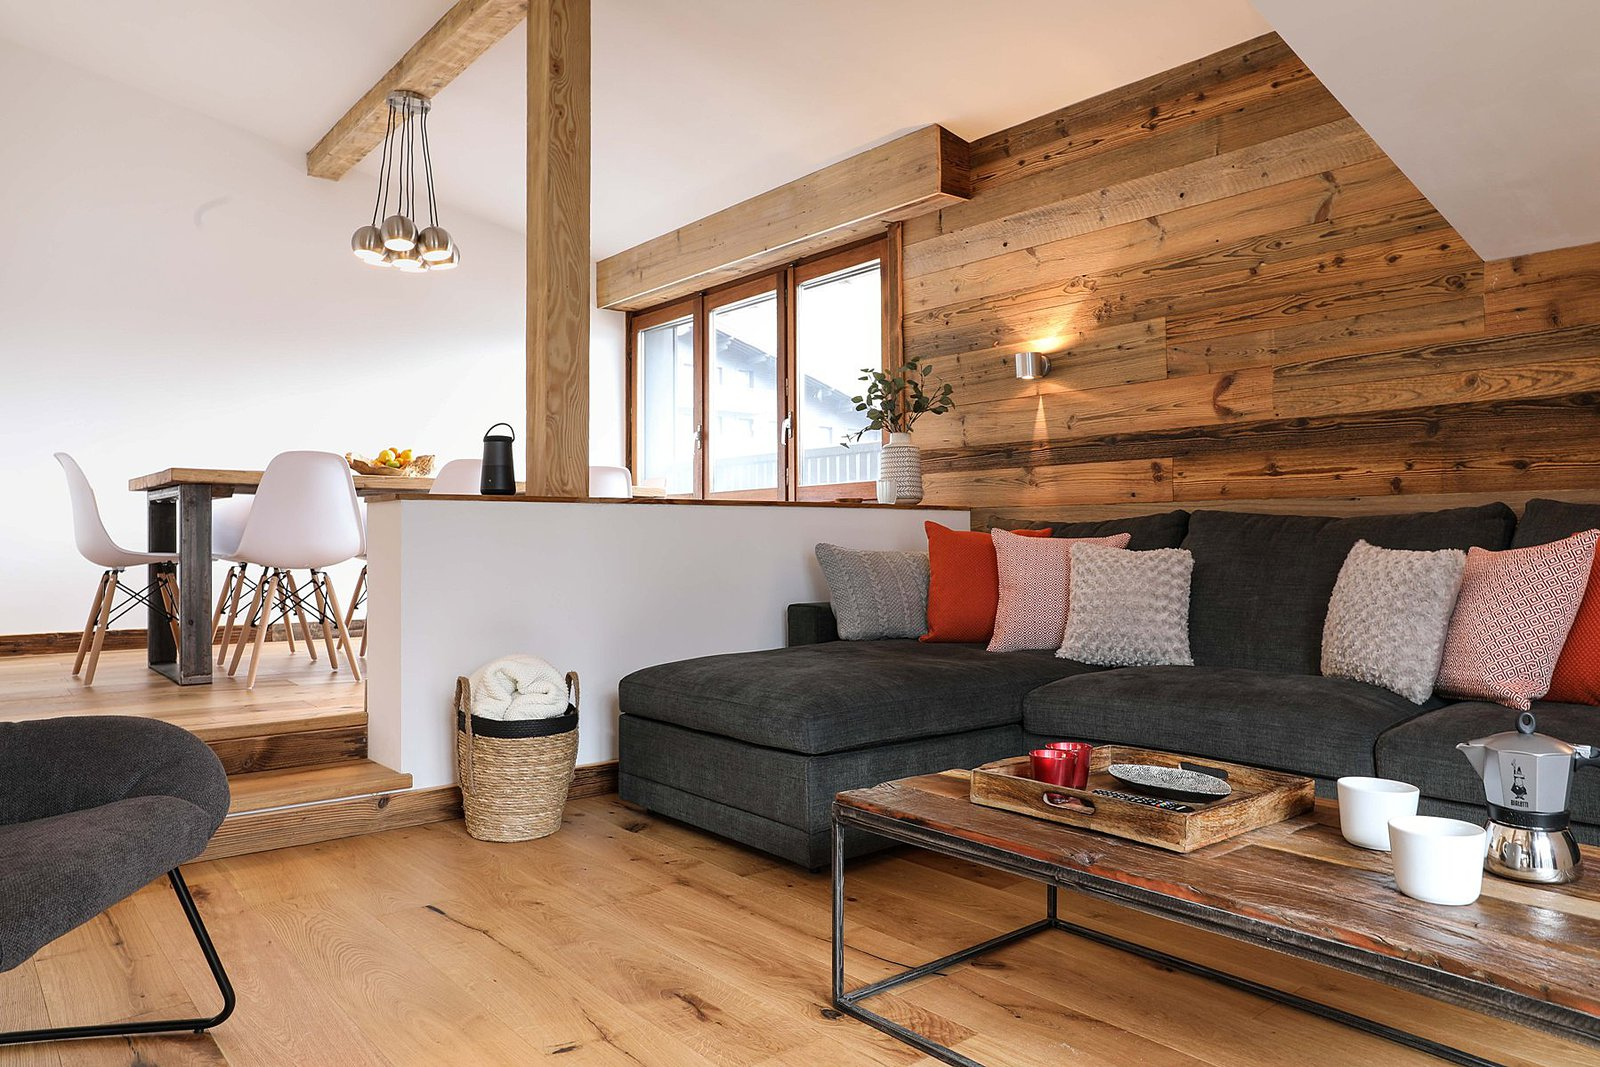 Le Brevent 1 Apartment, Chamonix: Self-catering accommodation